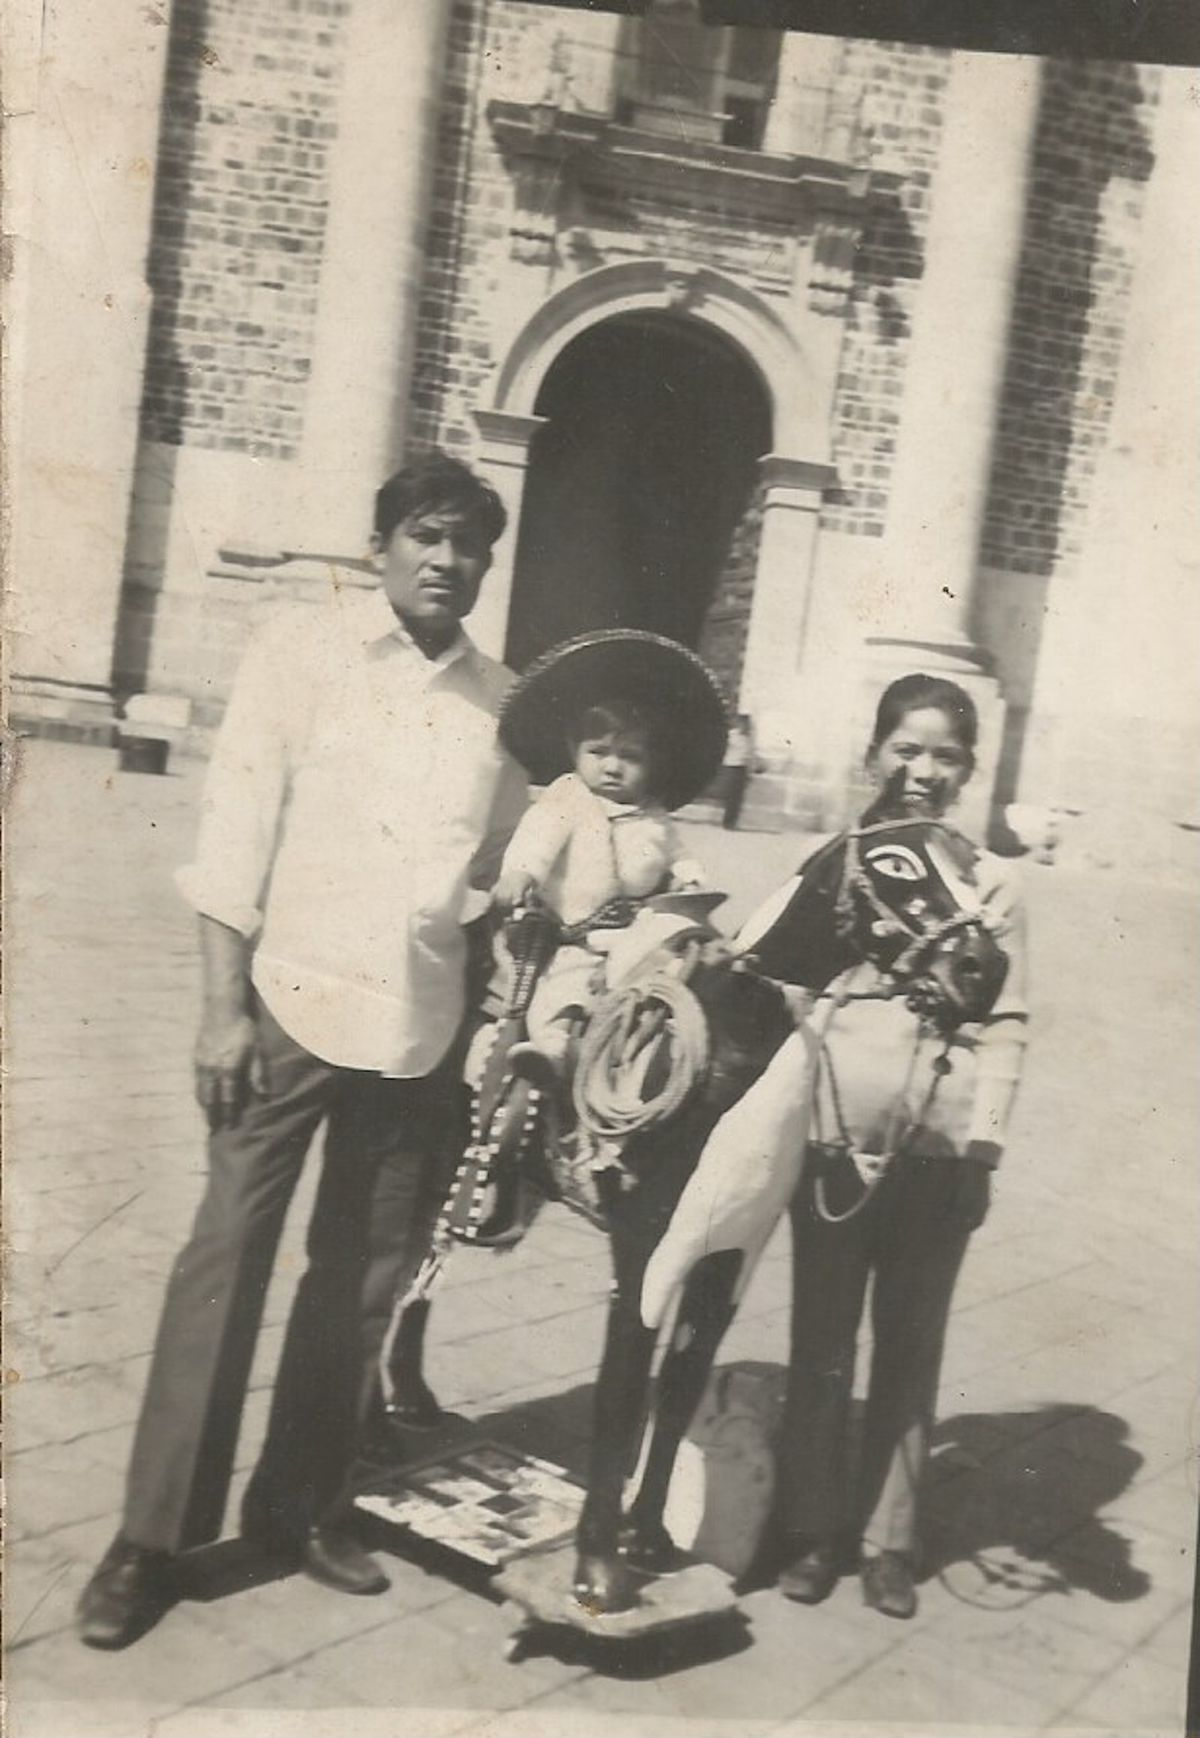 Samuel Linares and his wife Alicia with son Jorge in Mexico City.